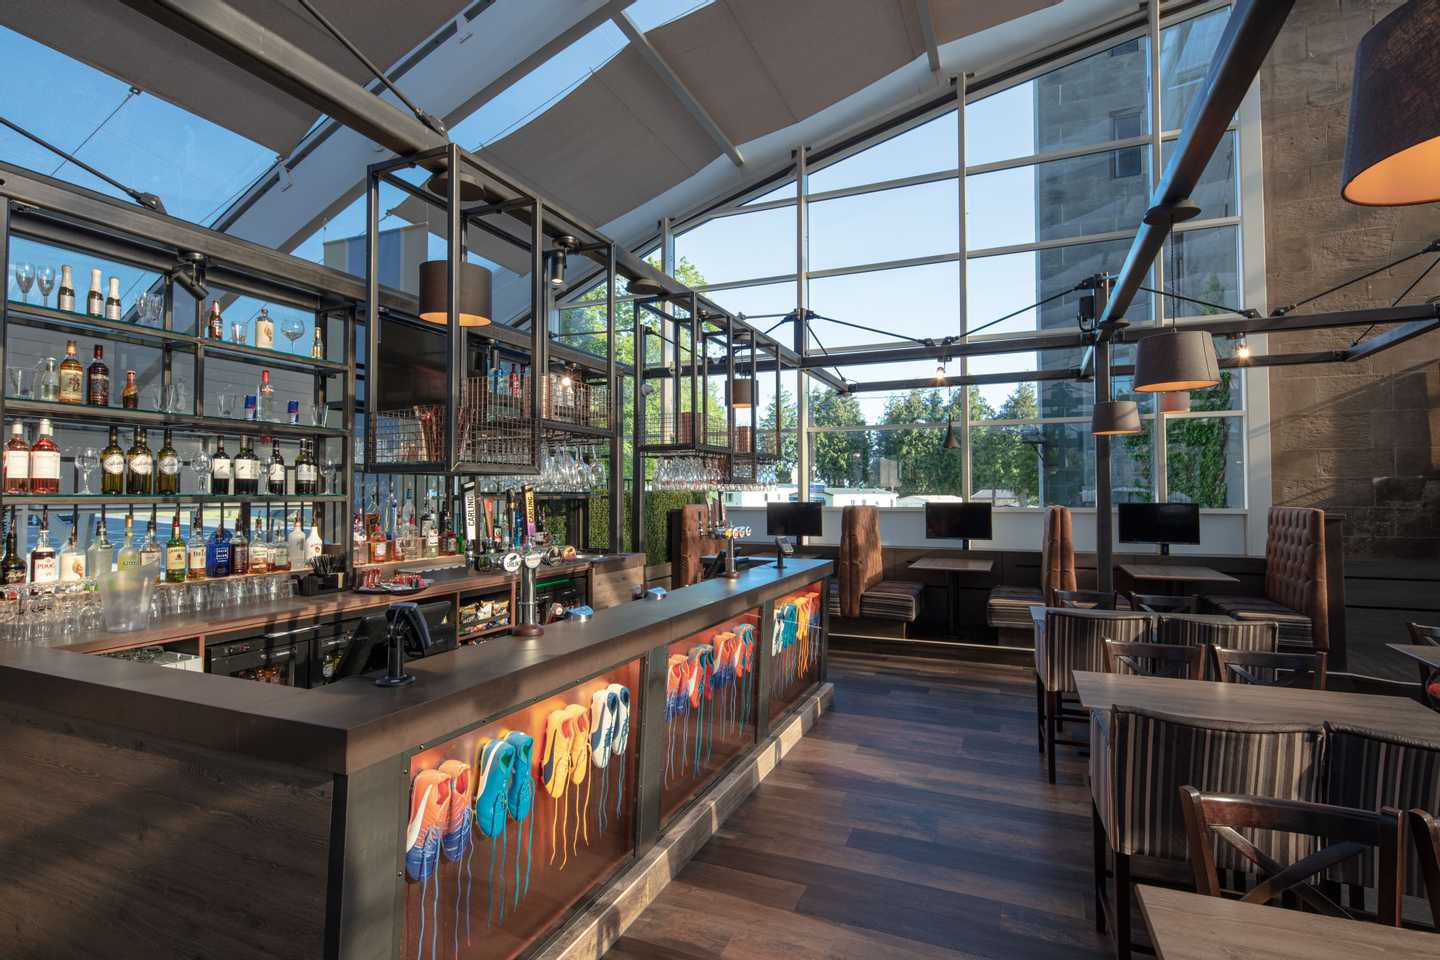 The Tower sports bar at Haggerston Castle